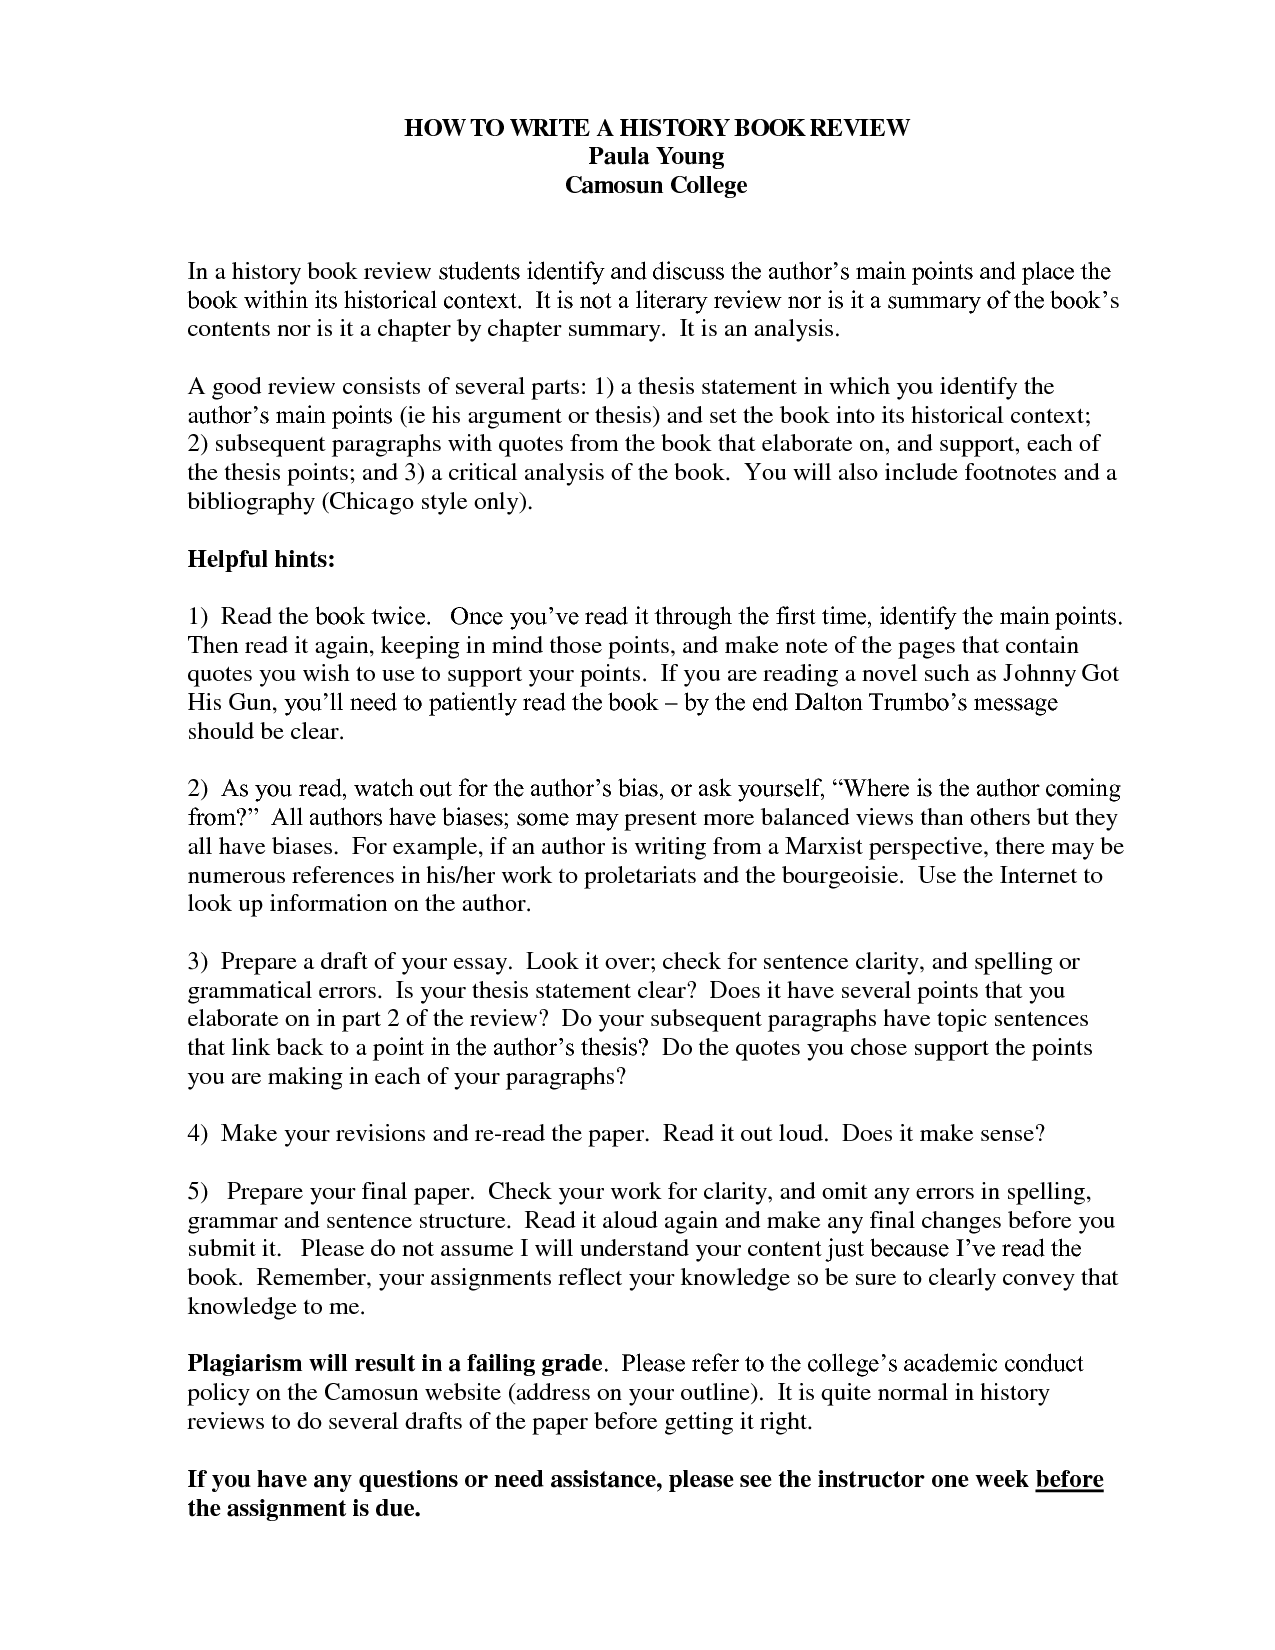 history research paper mla format the purdue university online writing lab serves writers from around - Example Of Book Review Essay